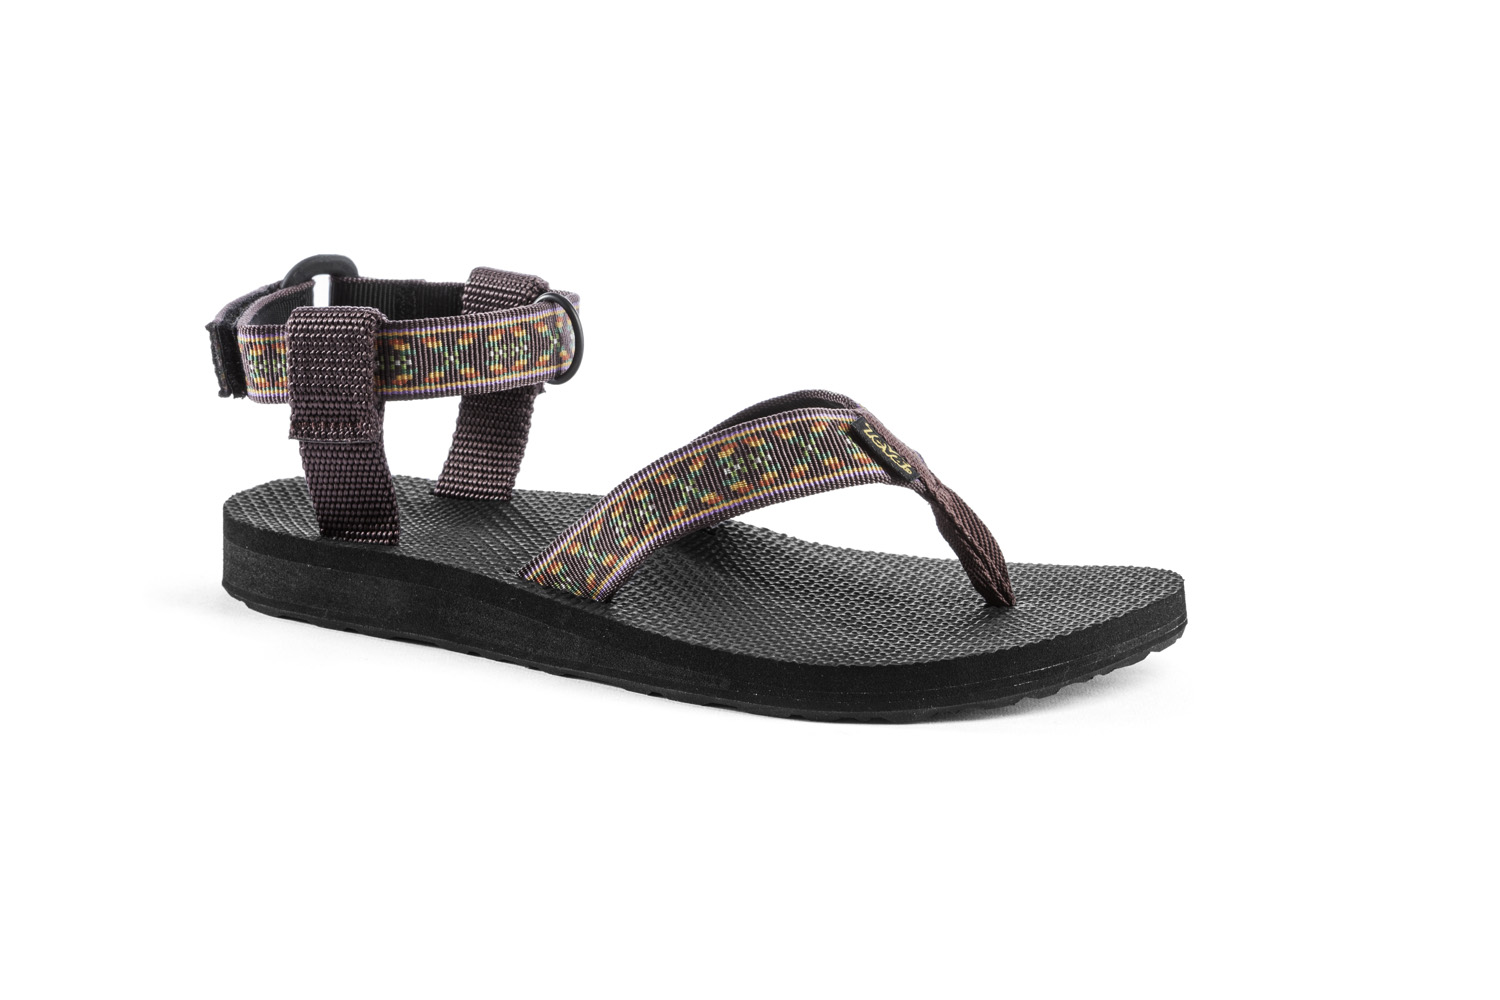 Teva Original Sandals in Urban 2 Brown, £30 (available at Teva)